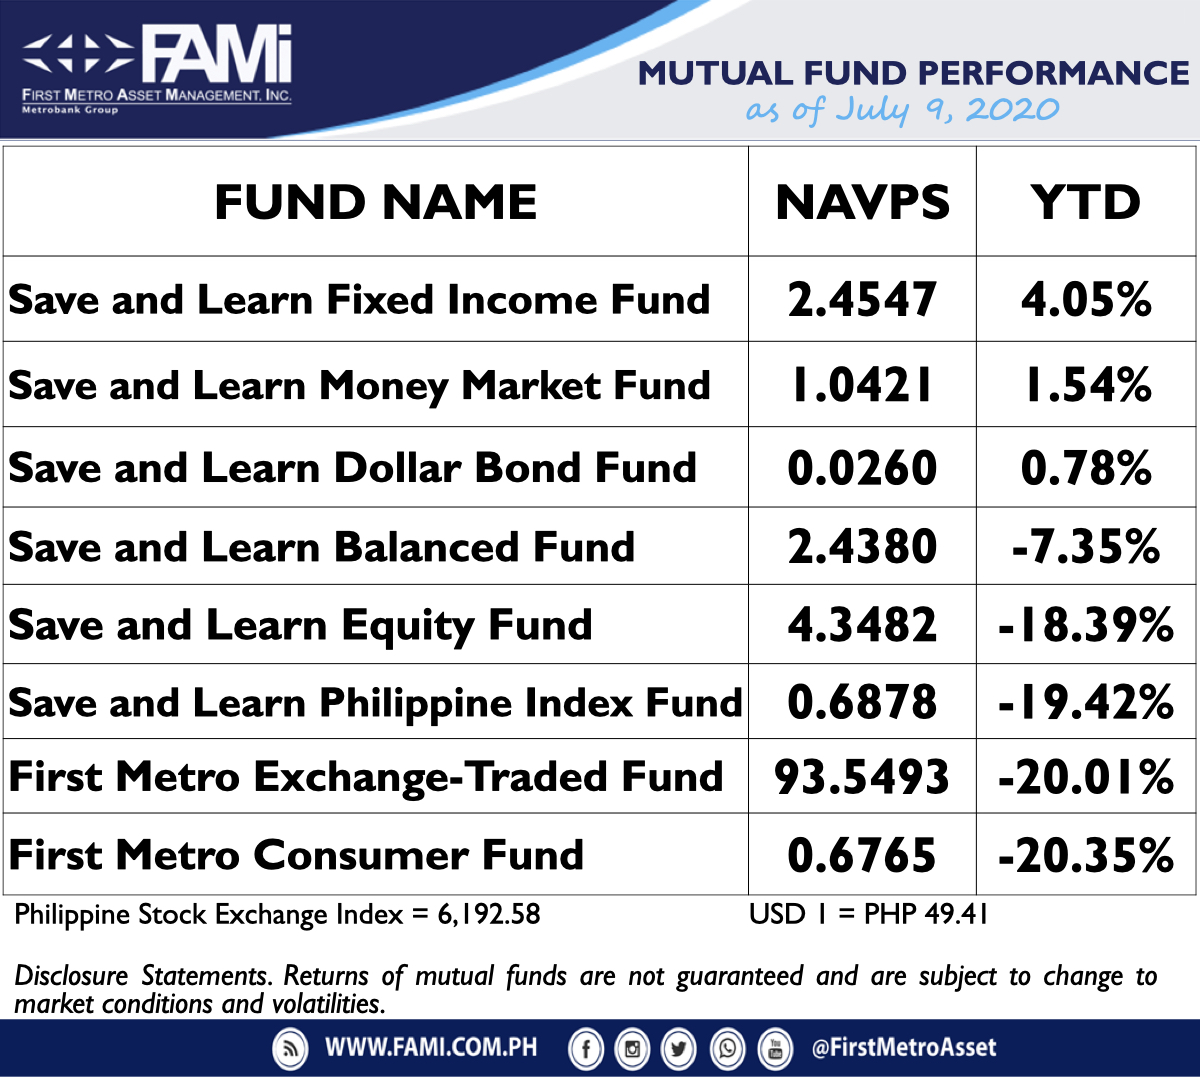 Here are our latest First Metro Asset Funds NAVPS as of July 9, 2020  #choosetoinvest #choosewisely #chooseFAMI https://t.co/48OQylJ6UL